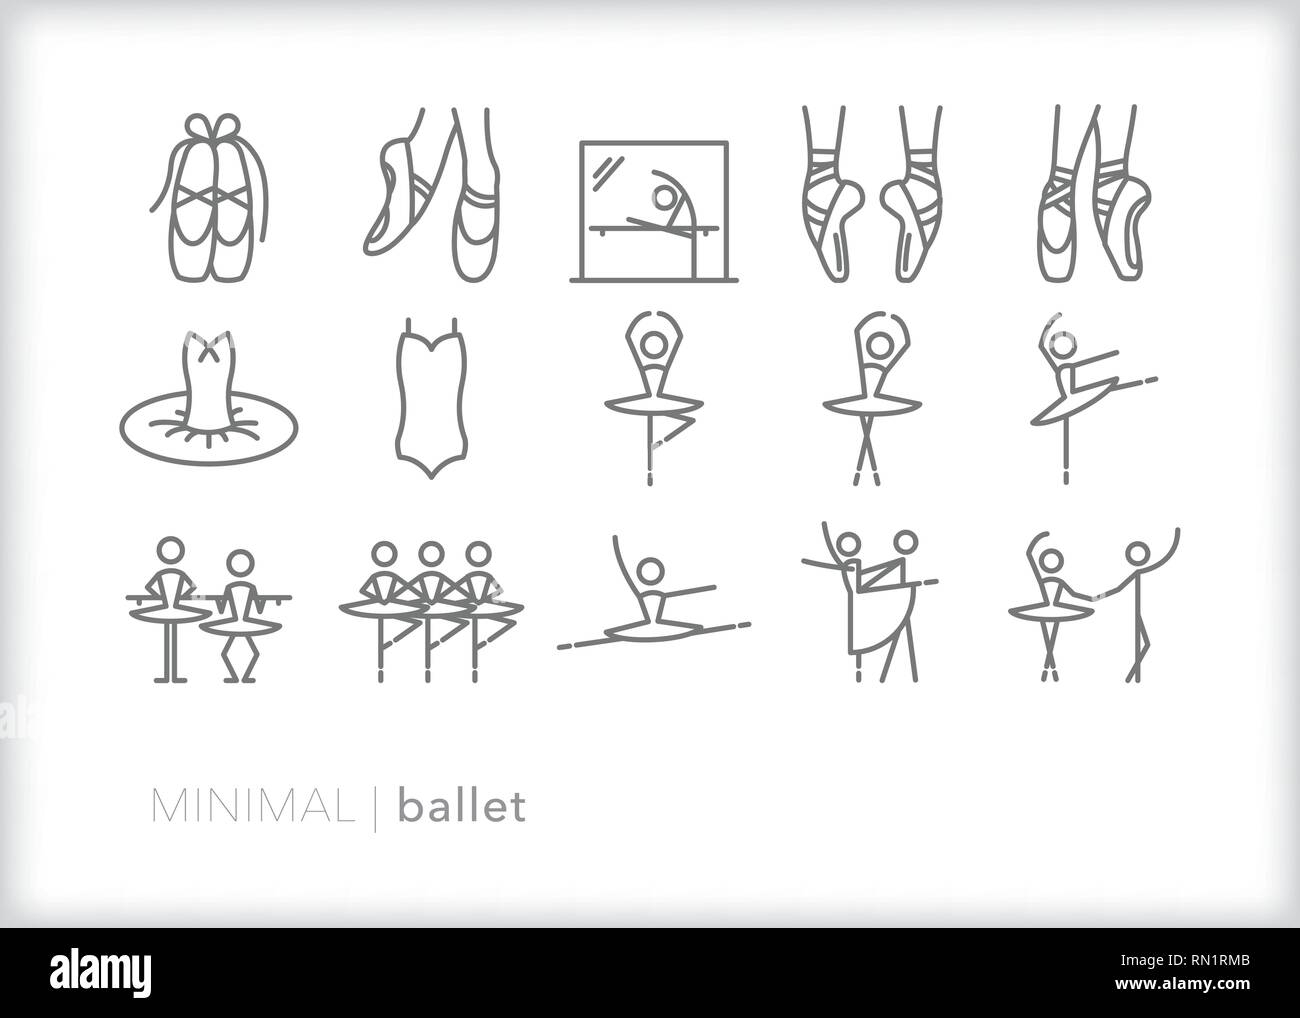 Set of 15 gray ballet icons of ballerina, dancer, tutu, ballet shoes, positions, practice and performance - Stock Vector